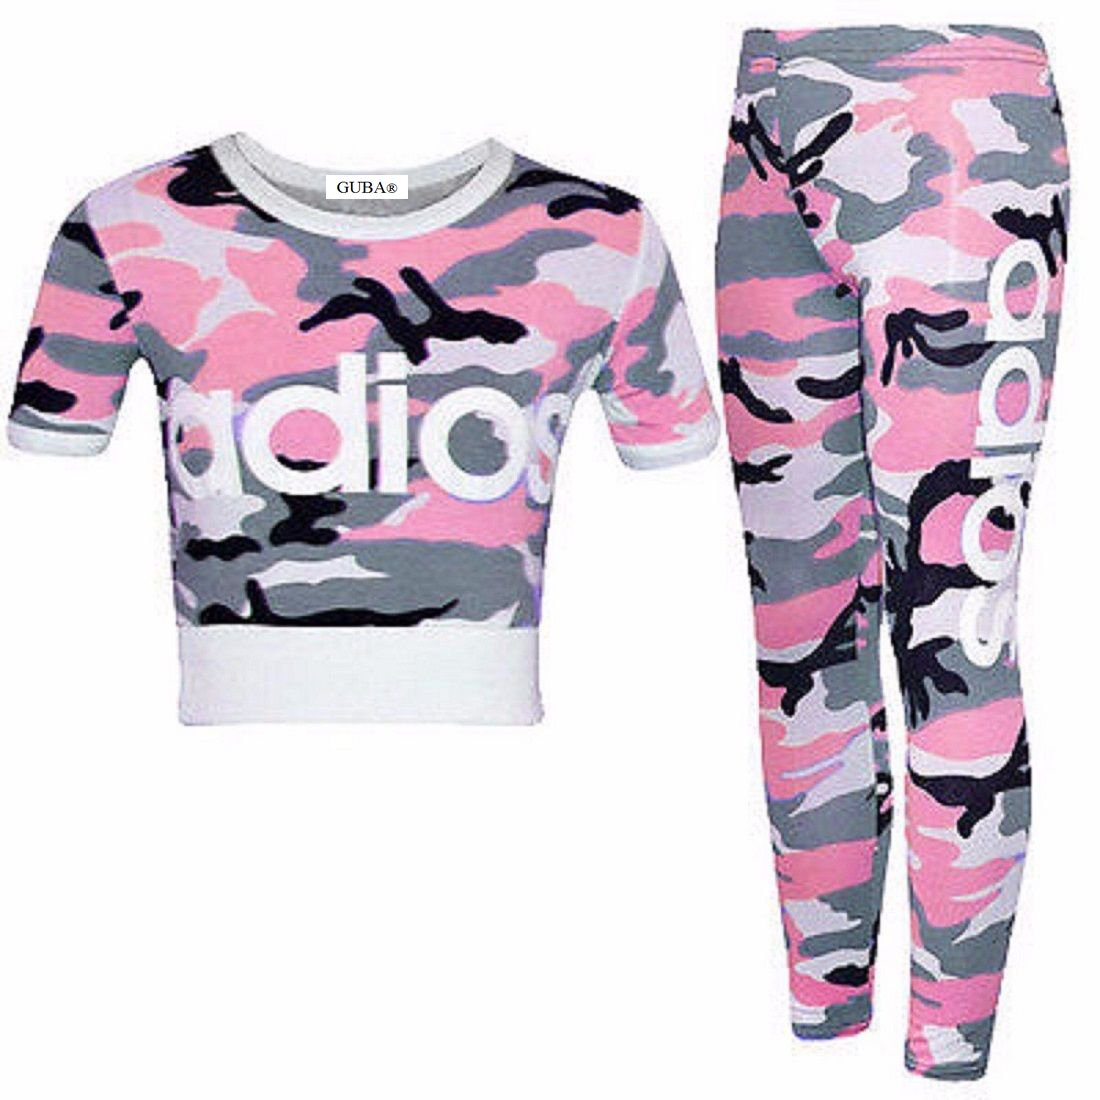 GUBA® Girls New Adios Athletic Camouflage Crop TOP & Legging Two Piece Set 7-13 Years